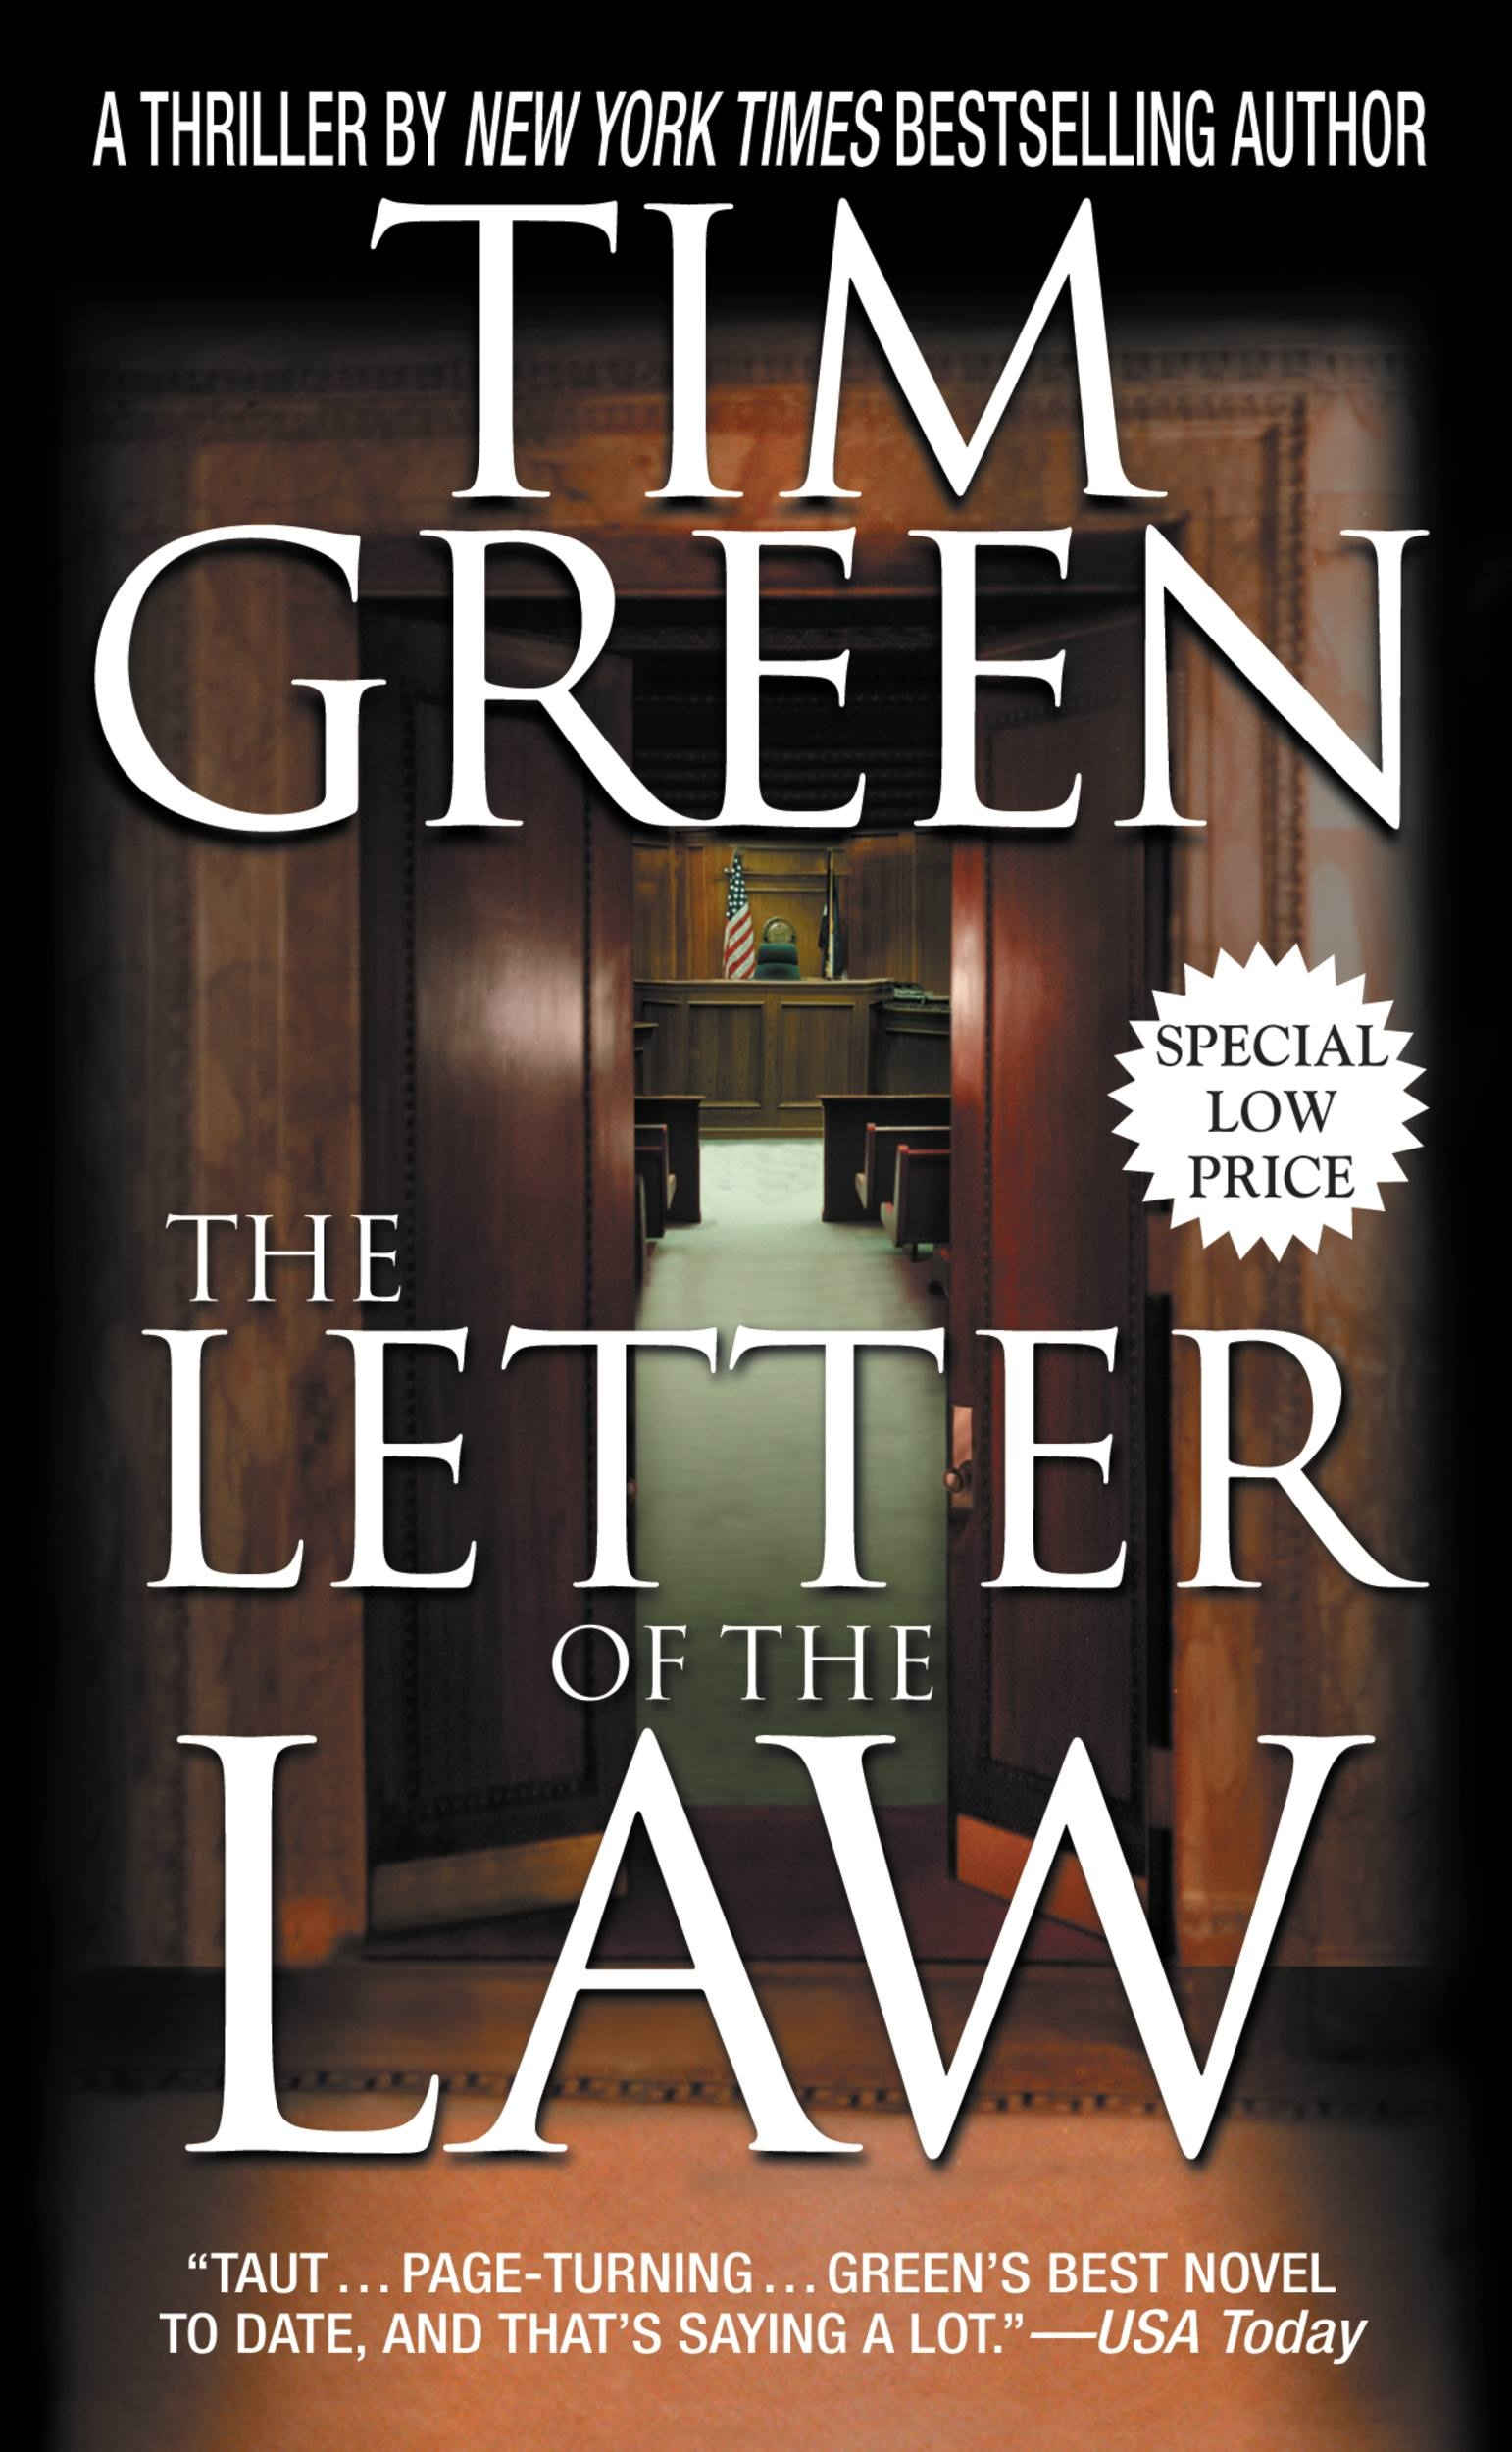 Letter of the Law, The